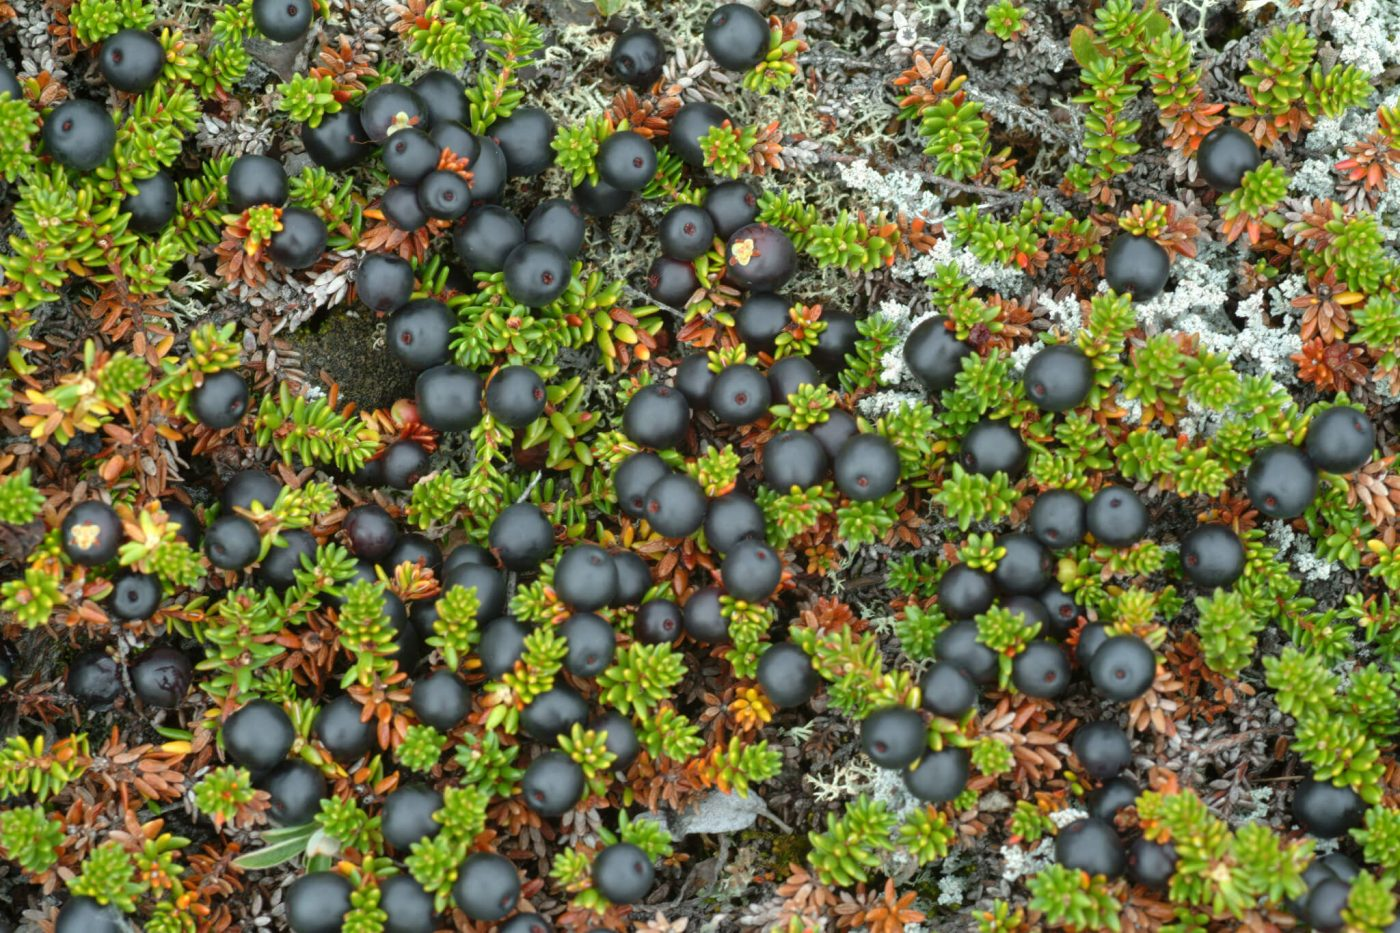 Blackberries in Greenland, by Visit Greenland